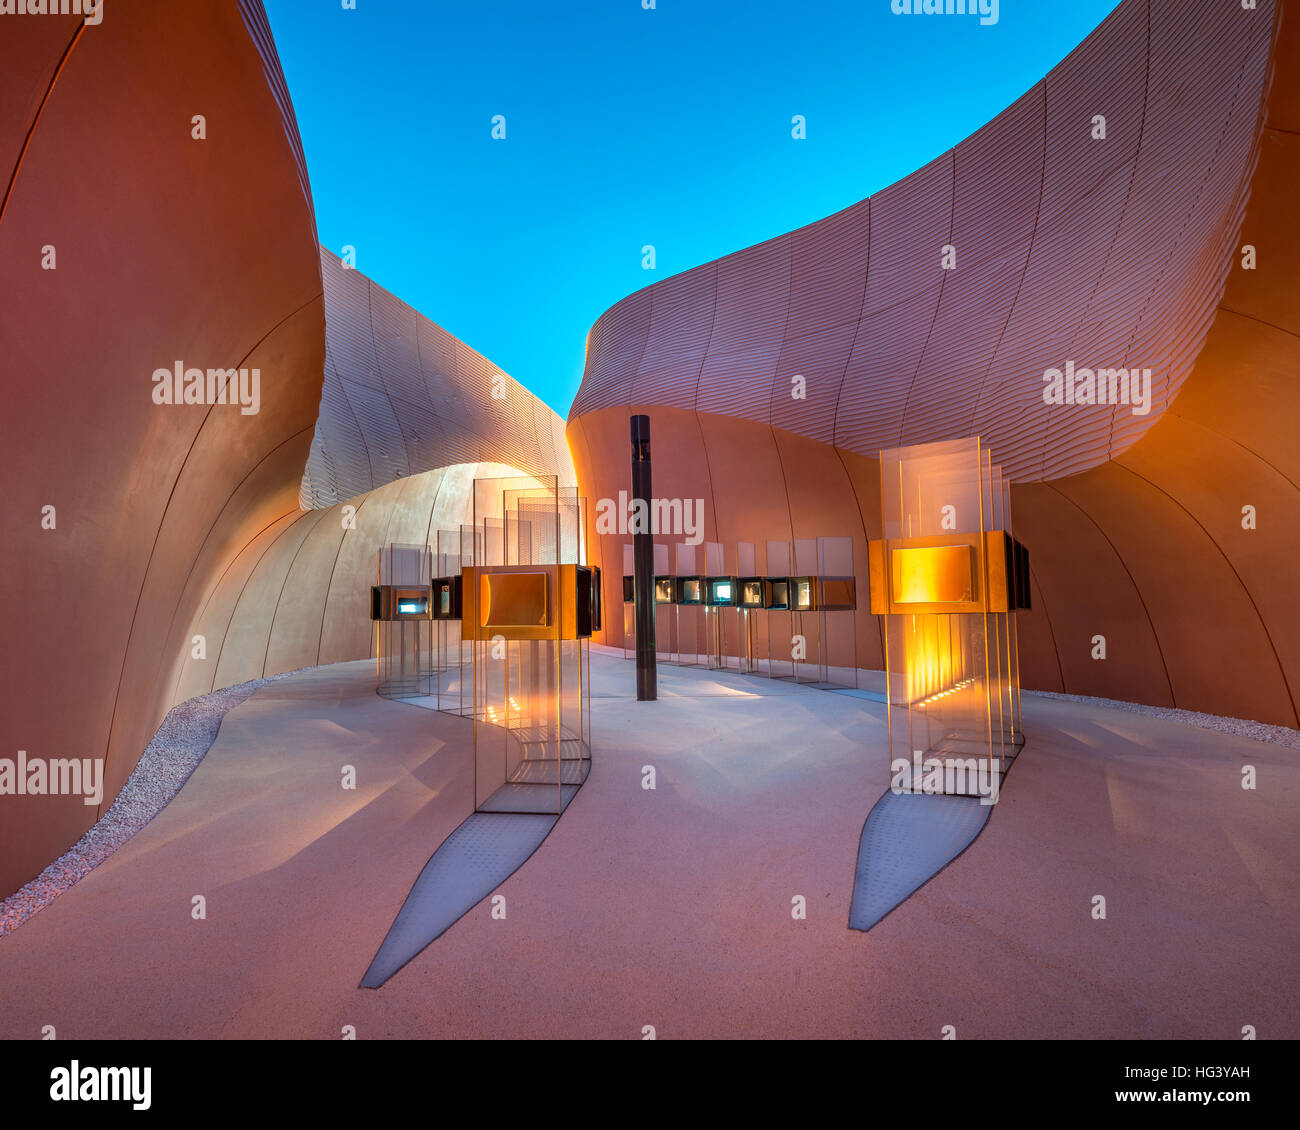 Entrance view of United Arab Emirates Pavilion at the Expo 2015 Milano, Italy by Foster + Partners. - Stock Image